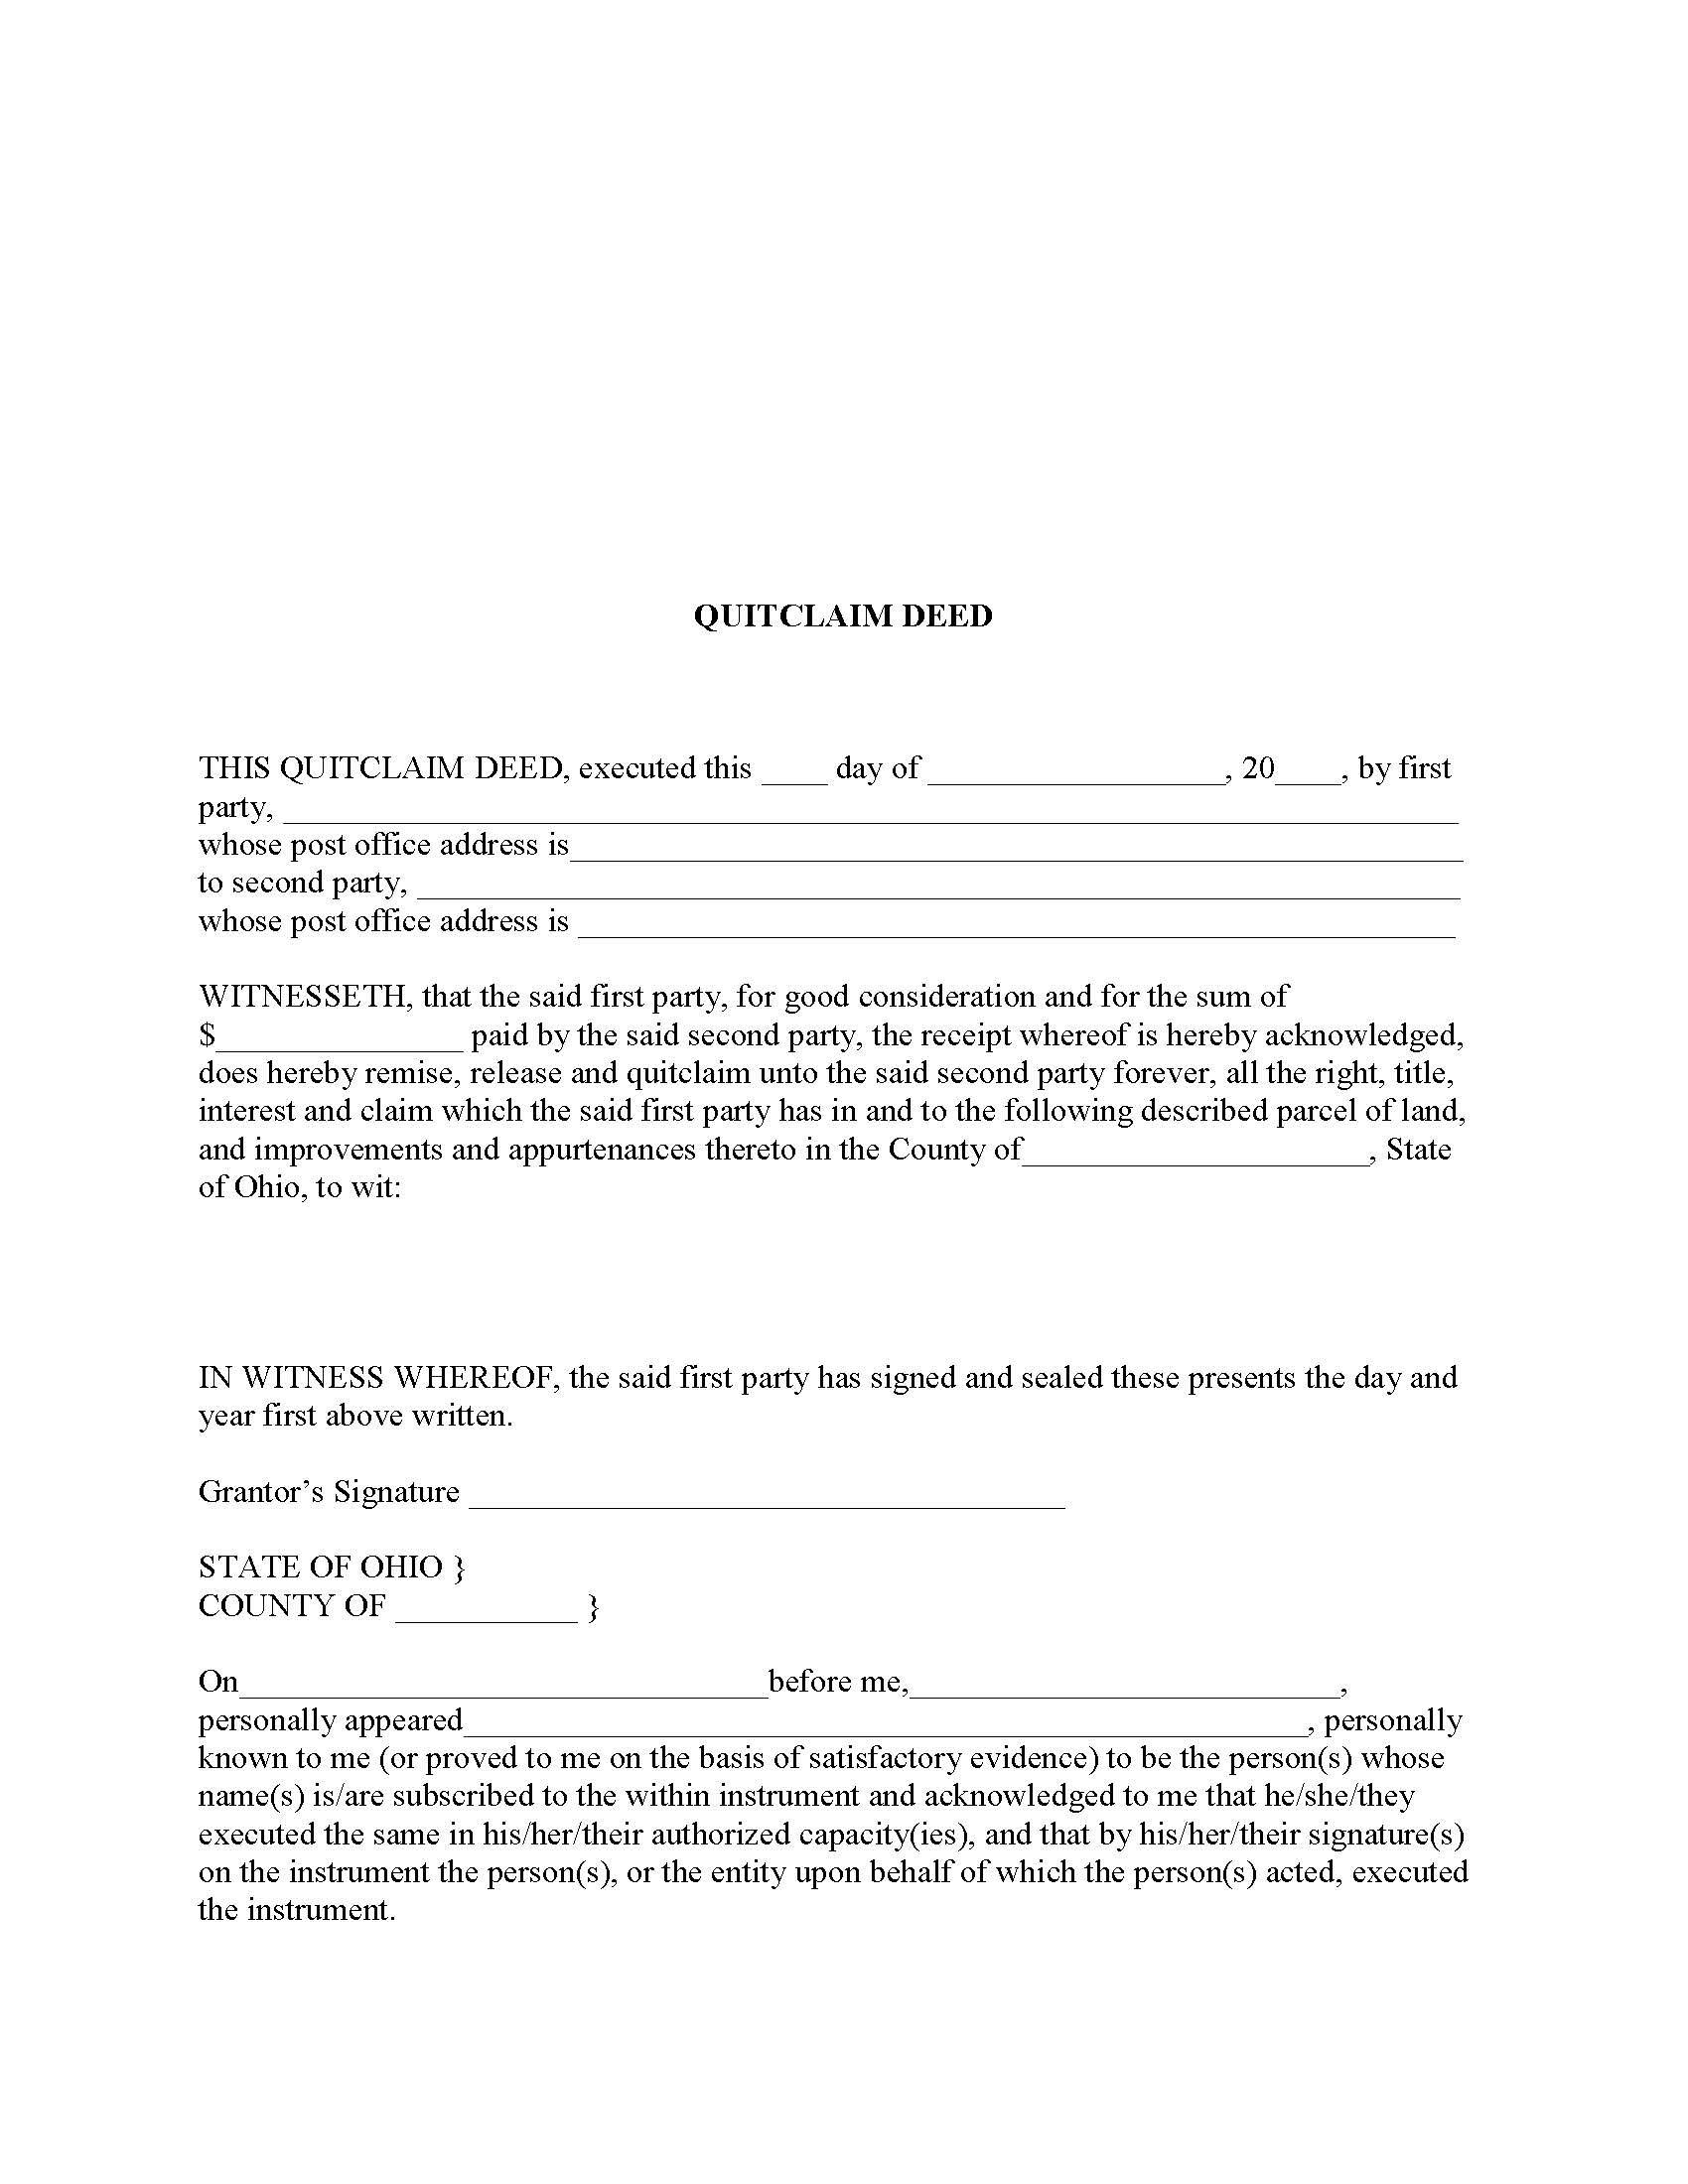 Ohio Quit Claim Deed Form Deed Forms Deed Forms – Quick Claim Deed